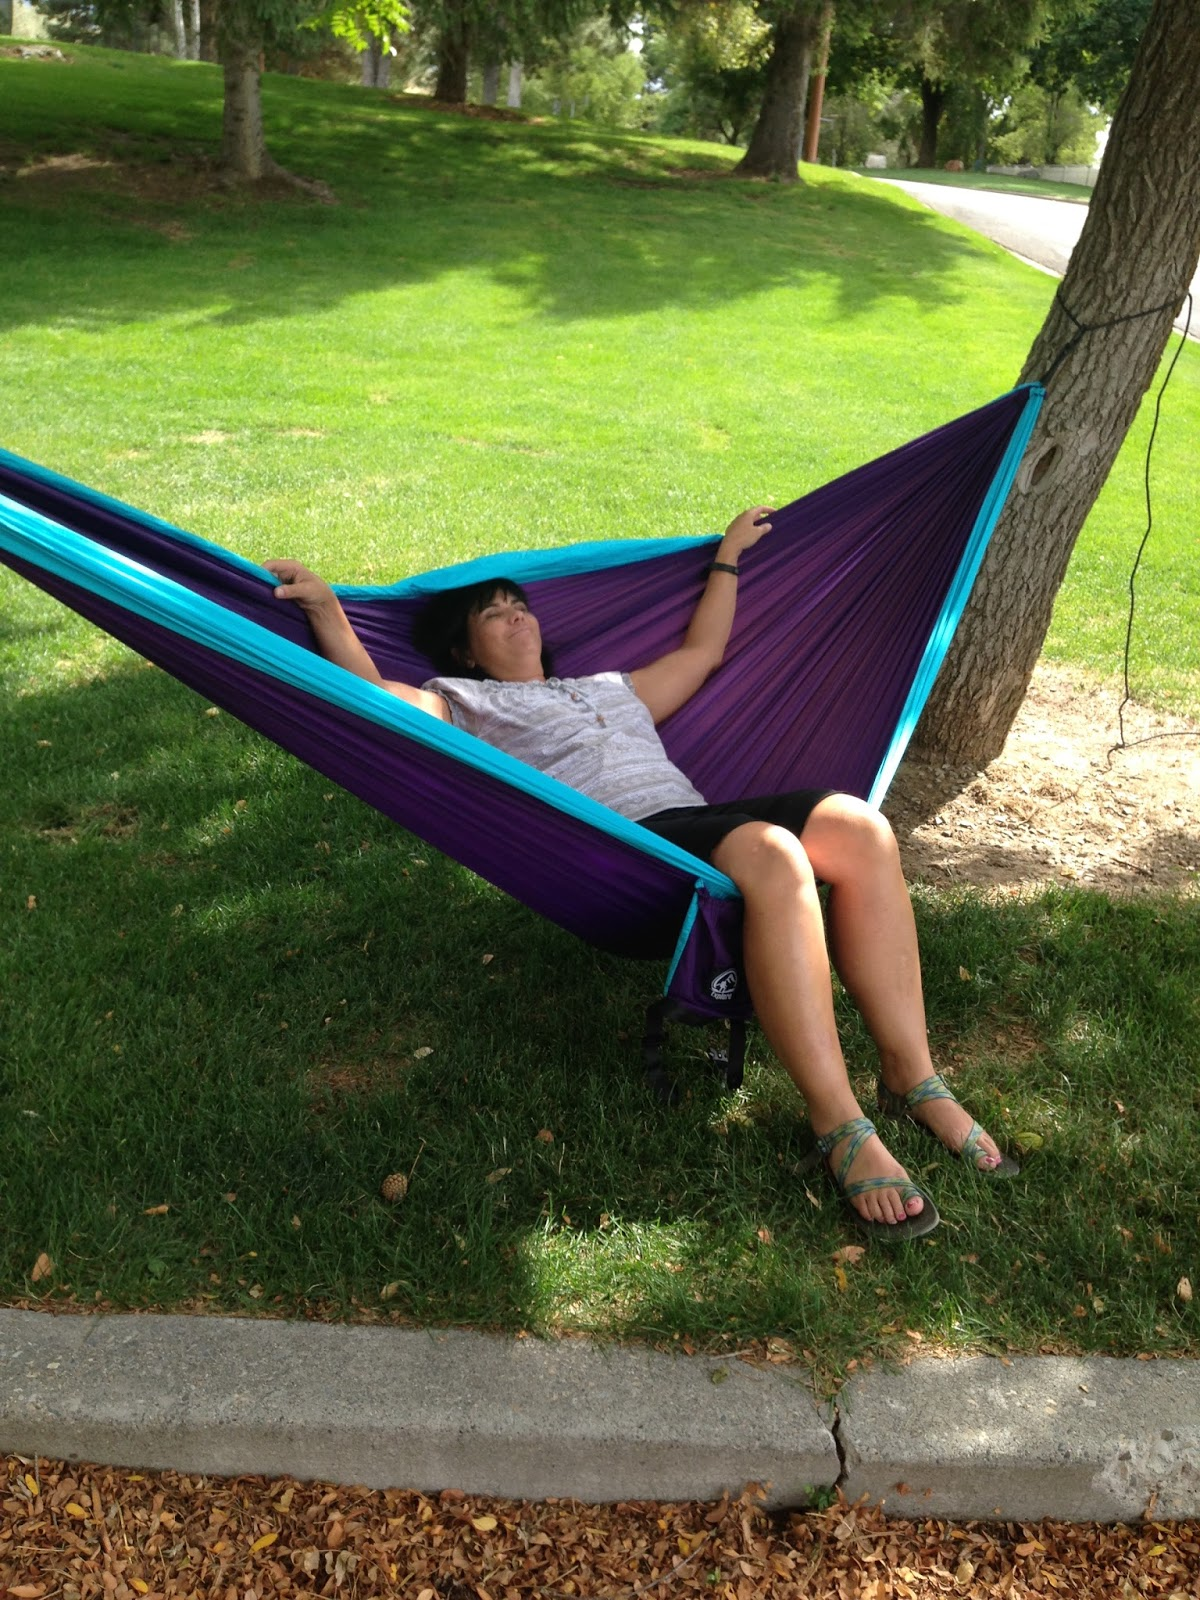 guides person and find arc including quotations blue hammock white cheap wood deluxe stand quilted shopping deals two get hammocks